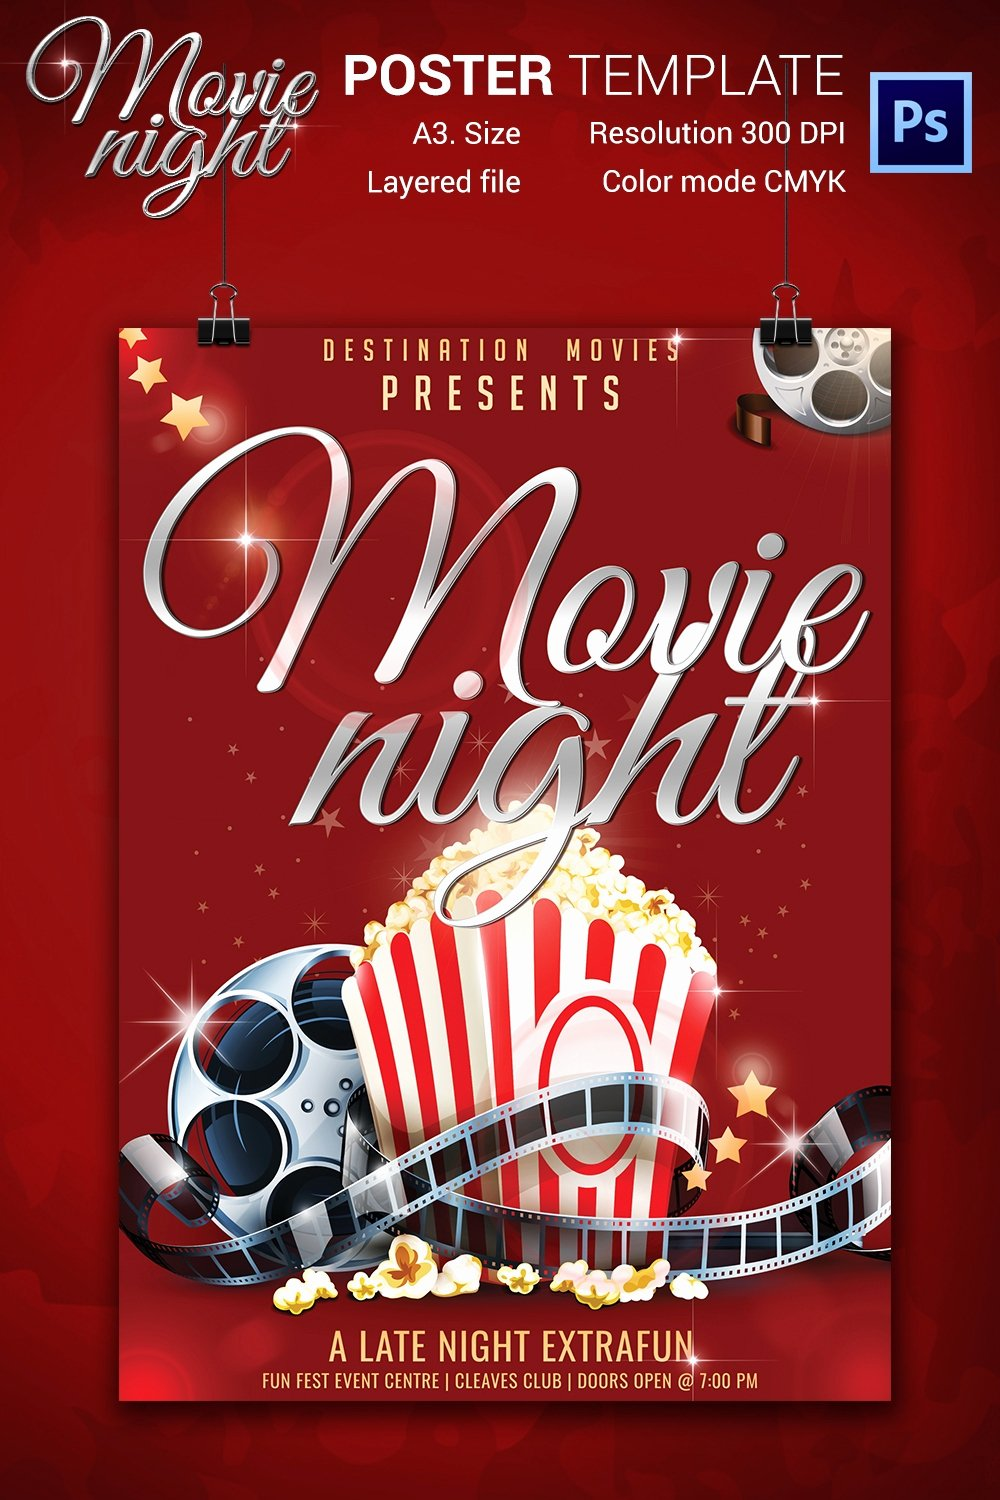 Free Movie Poster Template Lovely Movie Night Flyer Template 25 Free Jpg Psd format